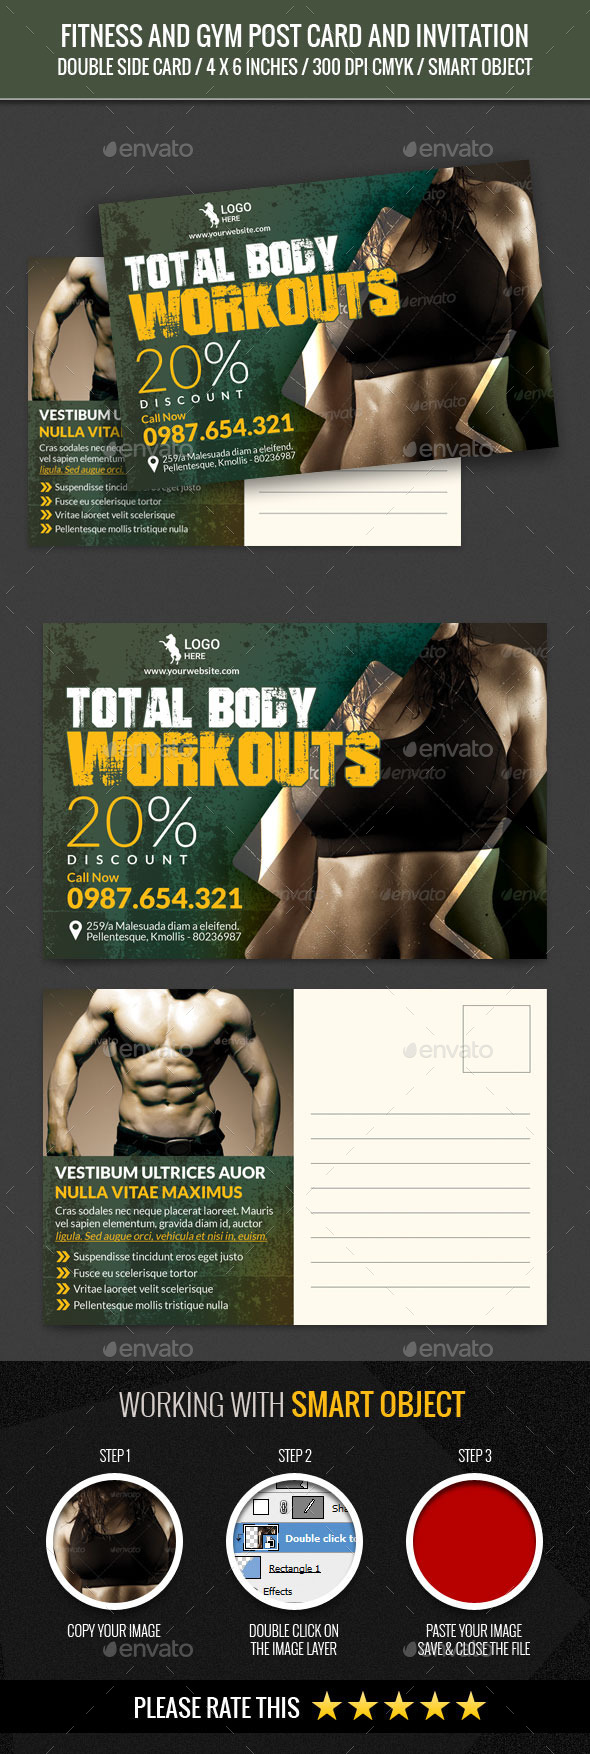 Fitness and GYM Post Card Template